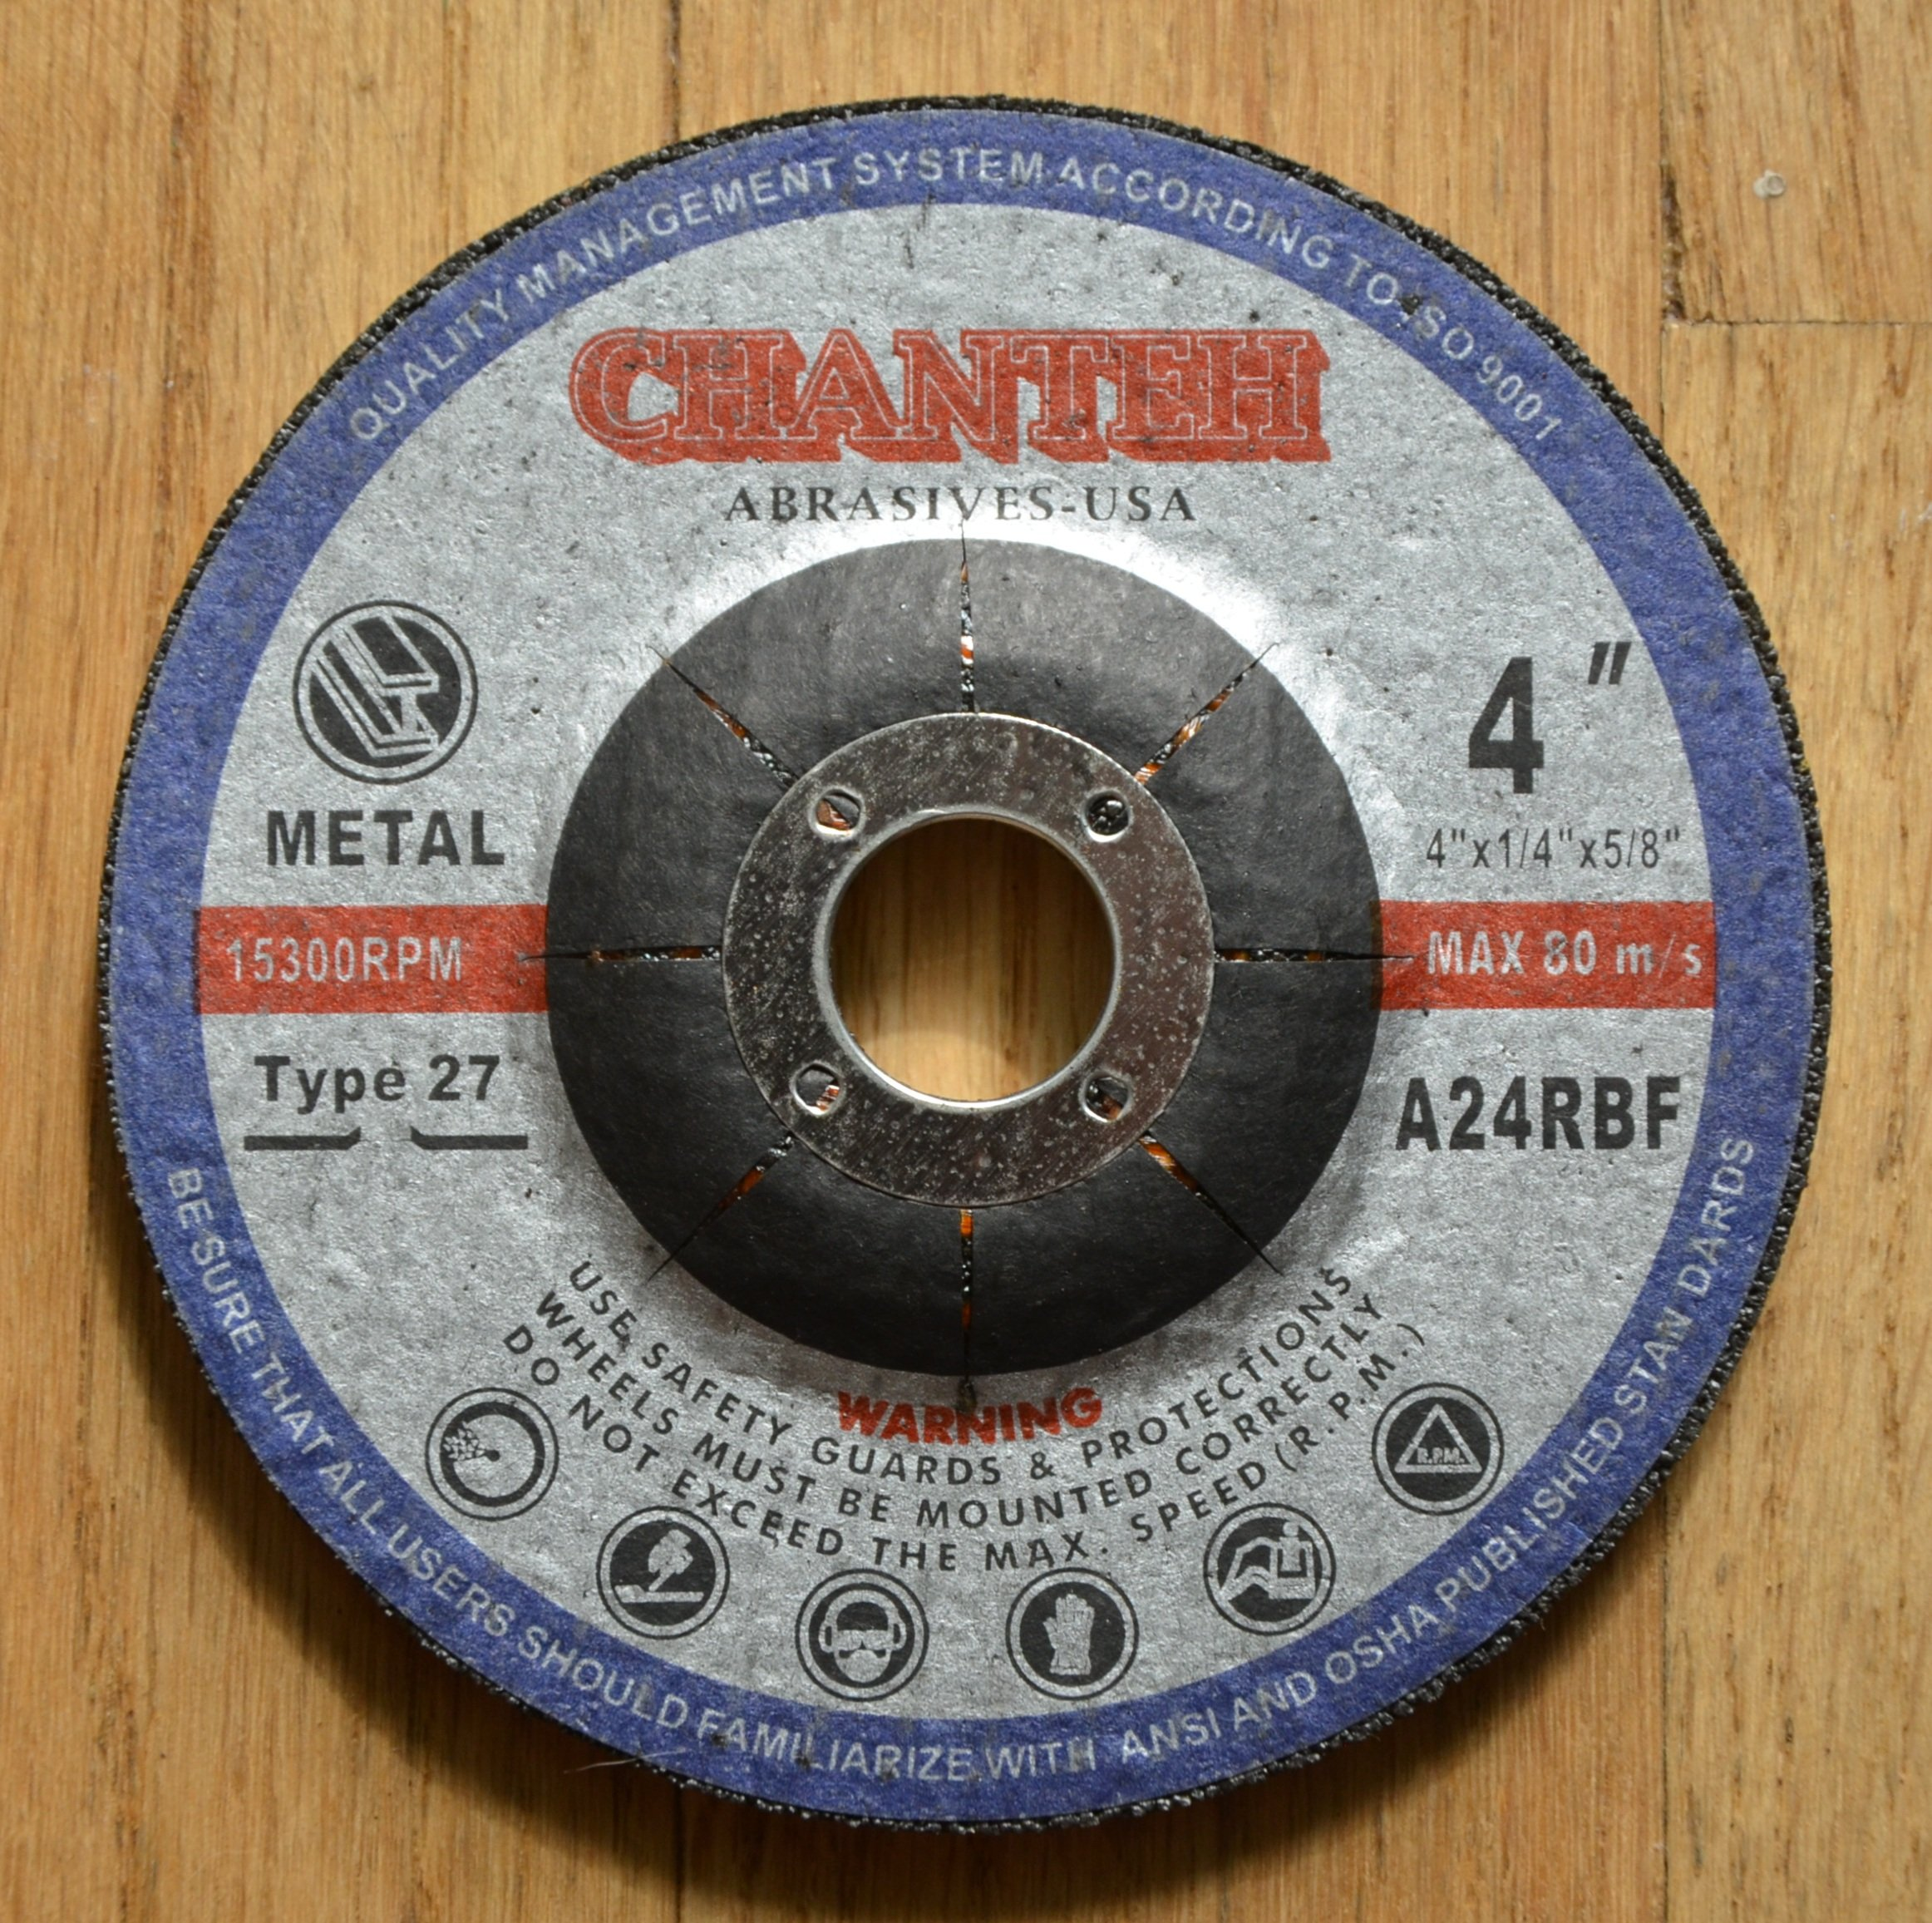 4'' x 1/4'' x 5/8'' Metal Grinding Wheel for Angle Grinder tool - 10 Pack